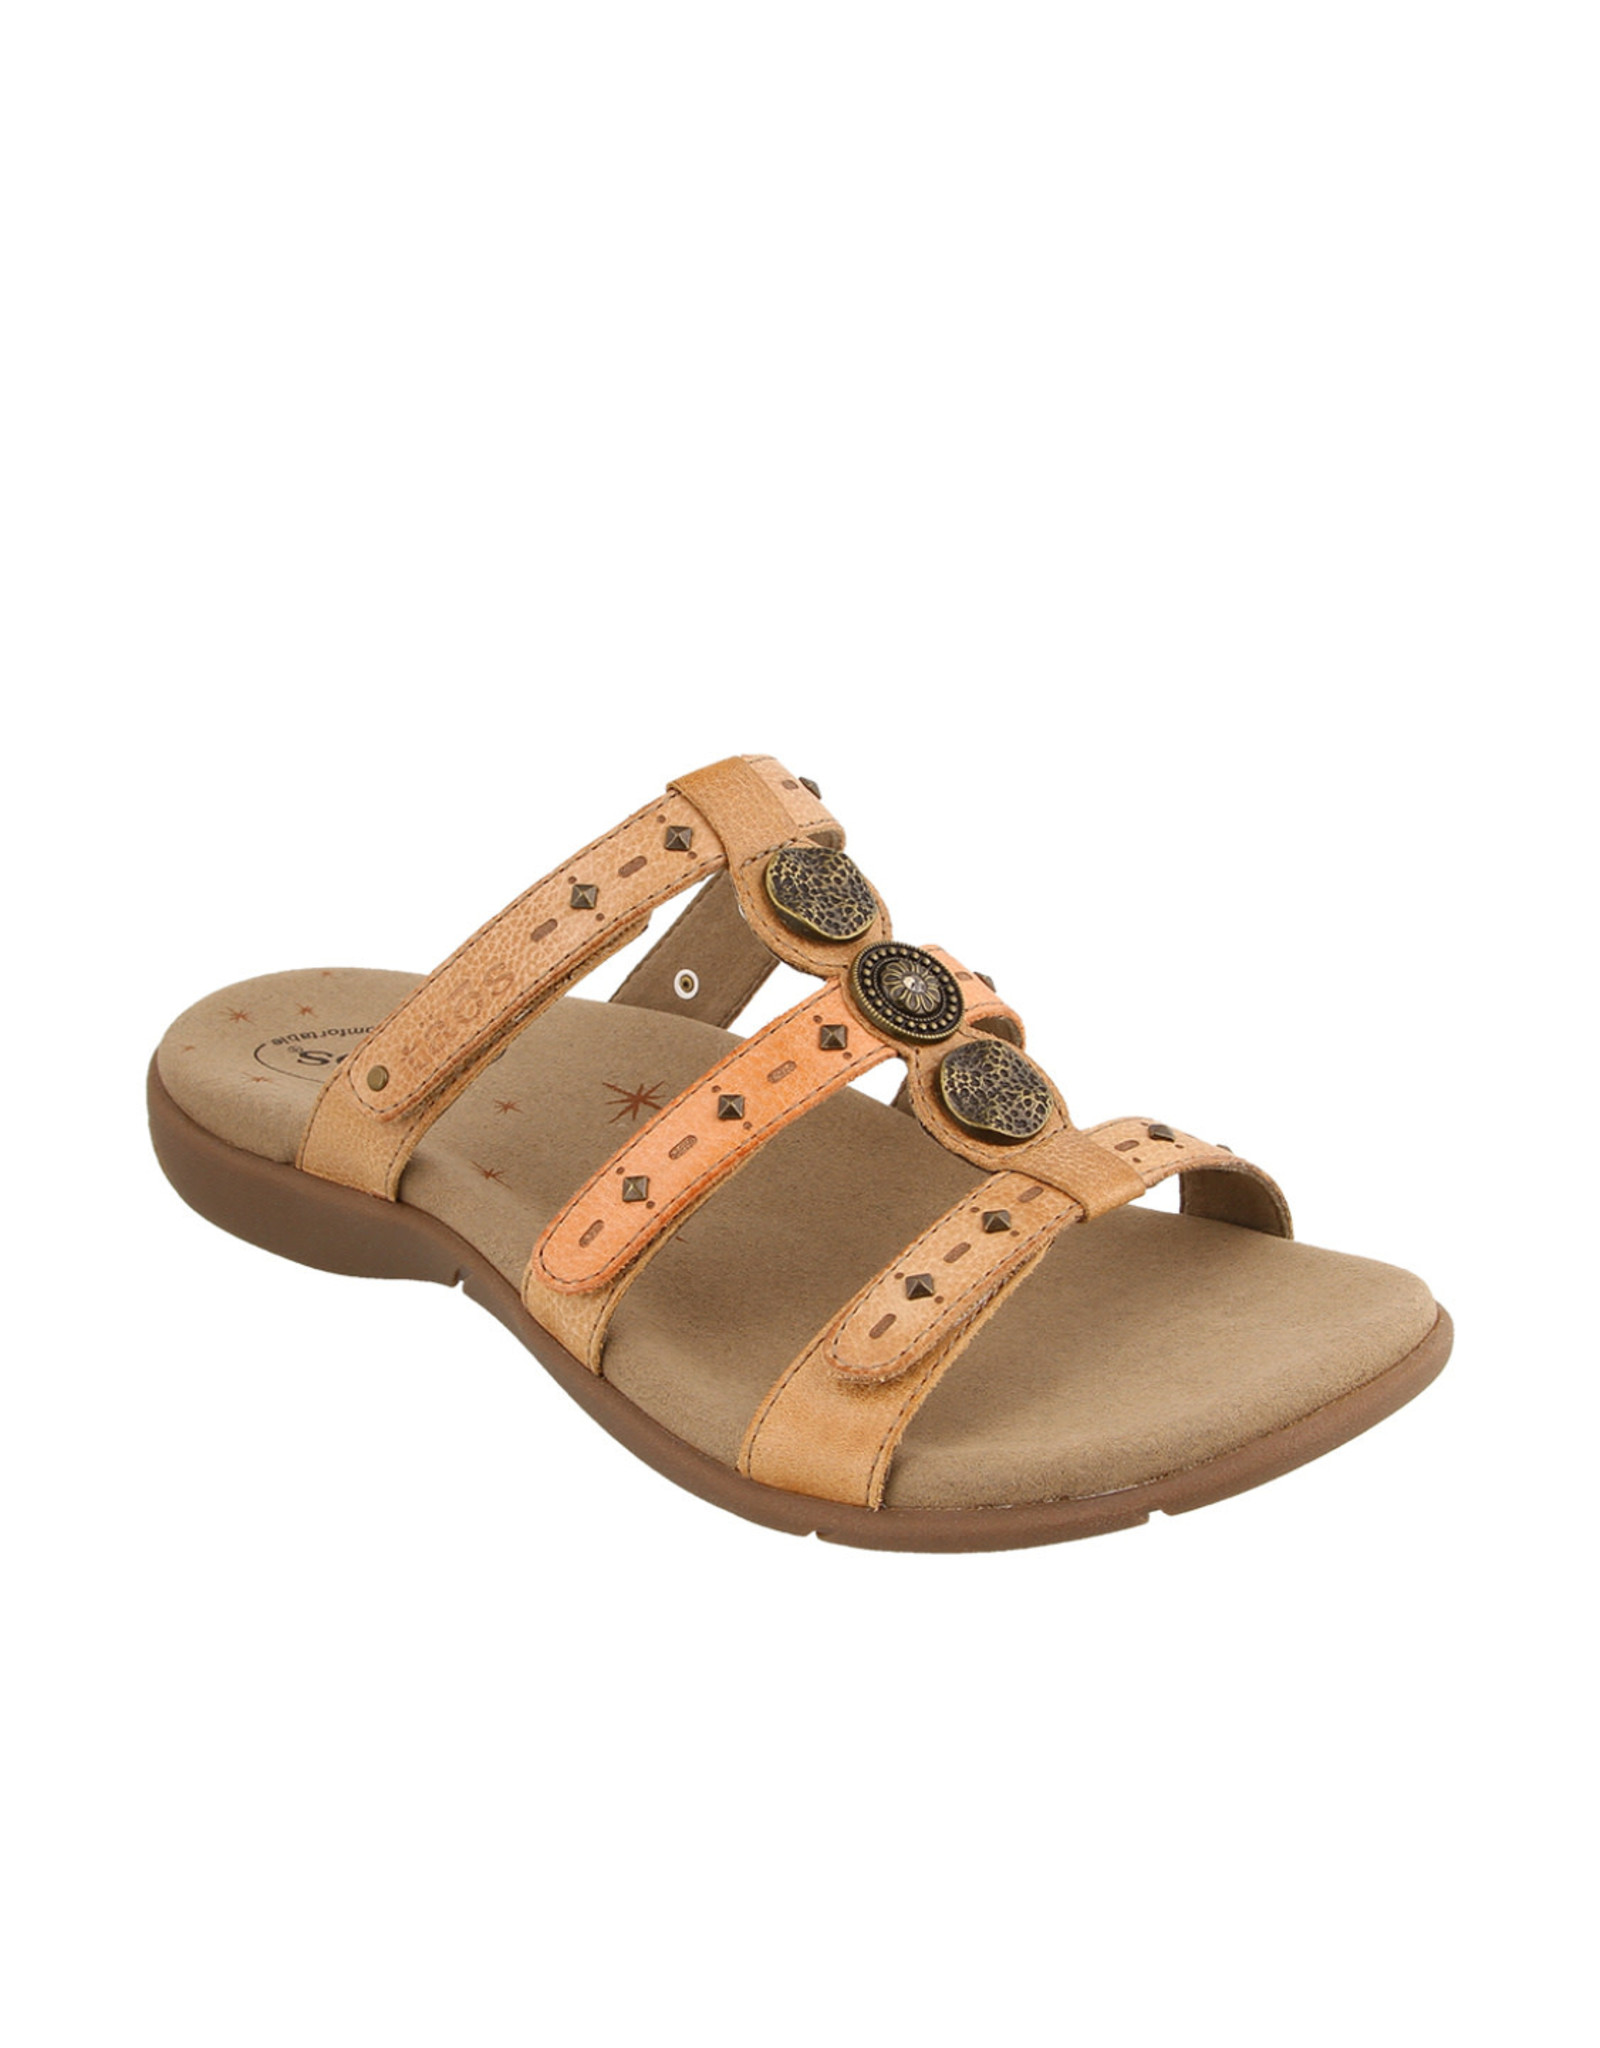 Taos Footwear Taos Festive Leather Slip On Sandal